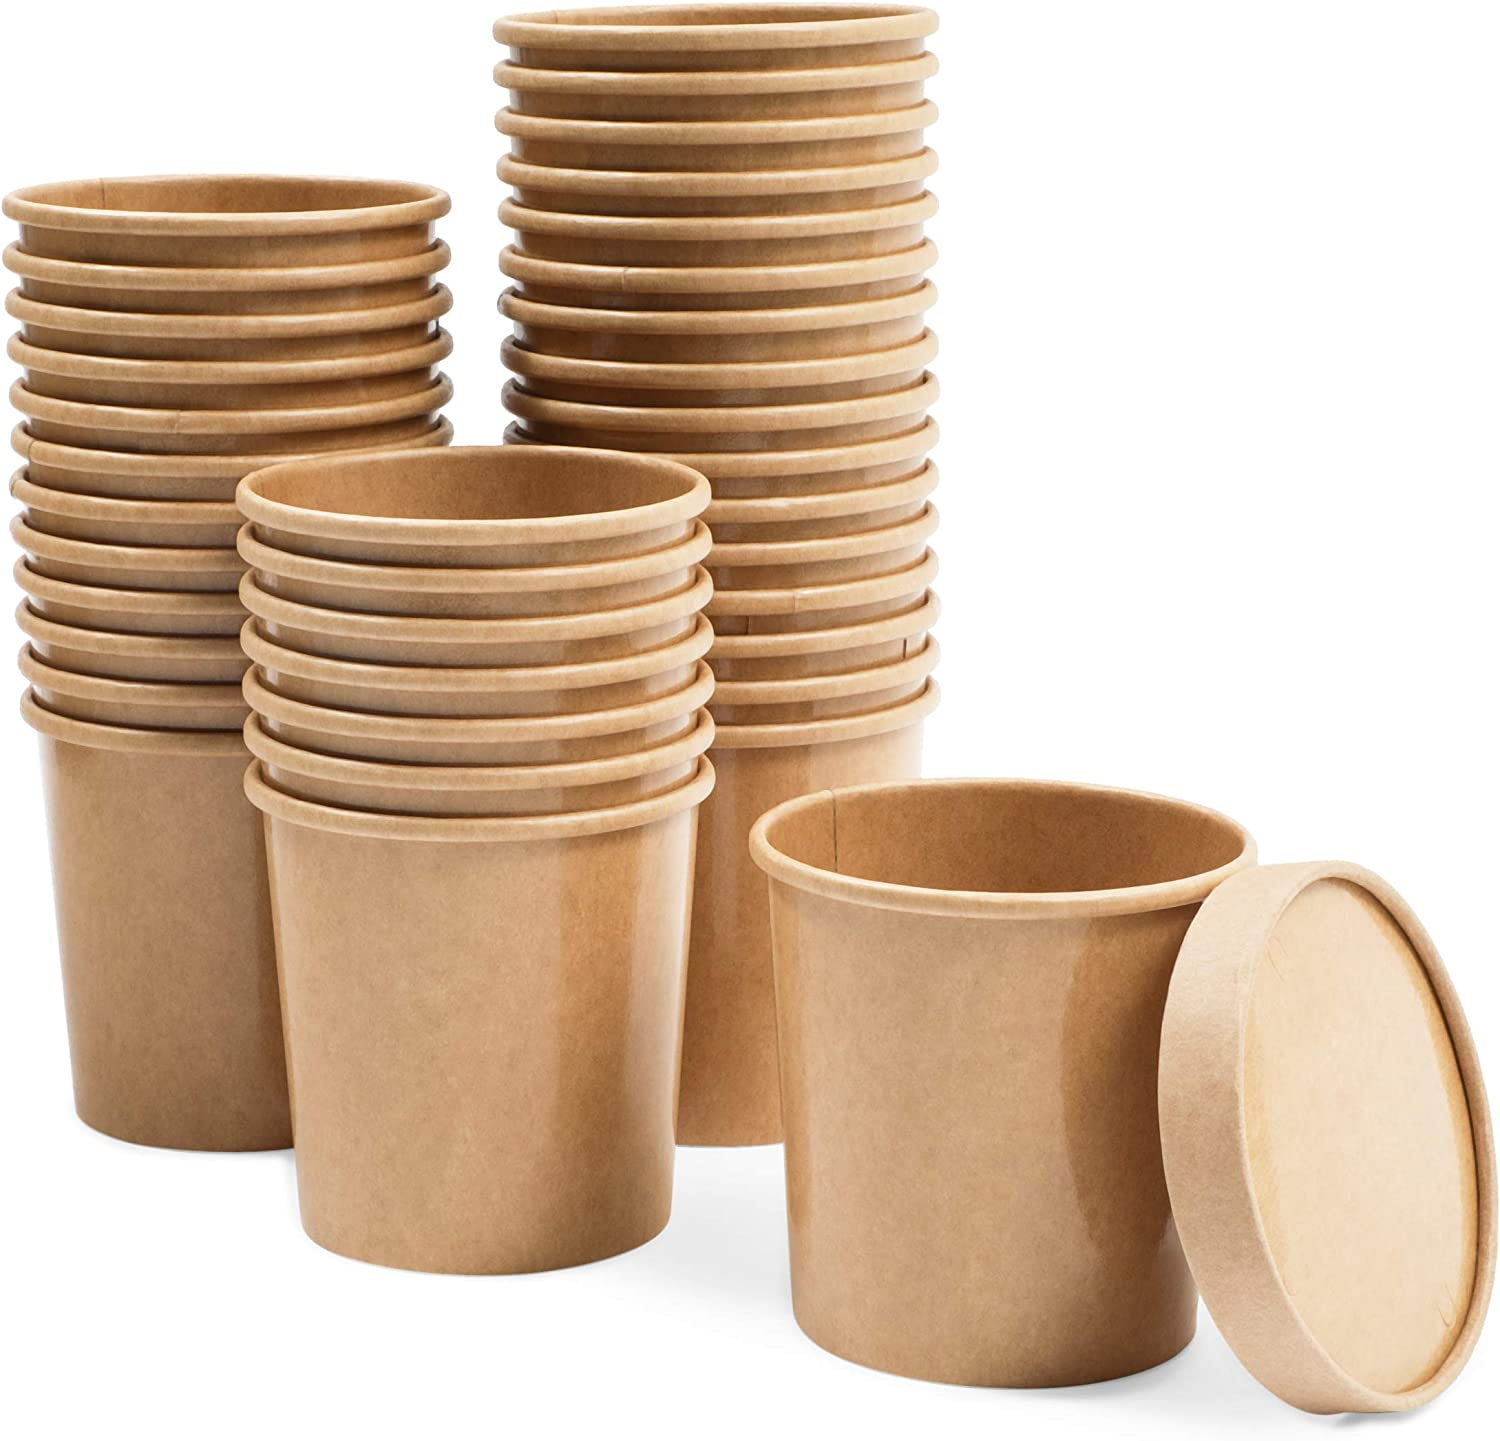 Brown Disposable Soup Containers with Lids for To-Go Food (16 oz, 36 Pack)